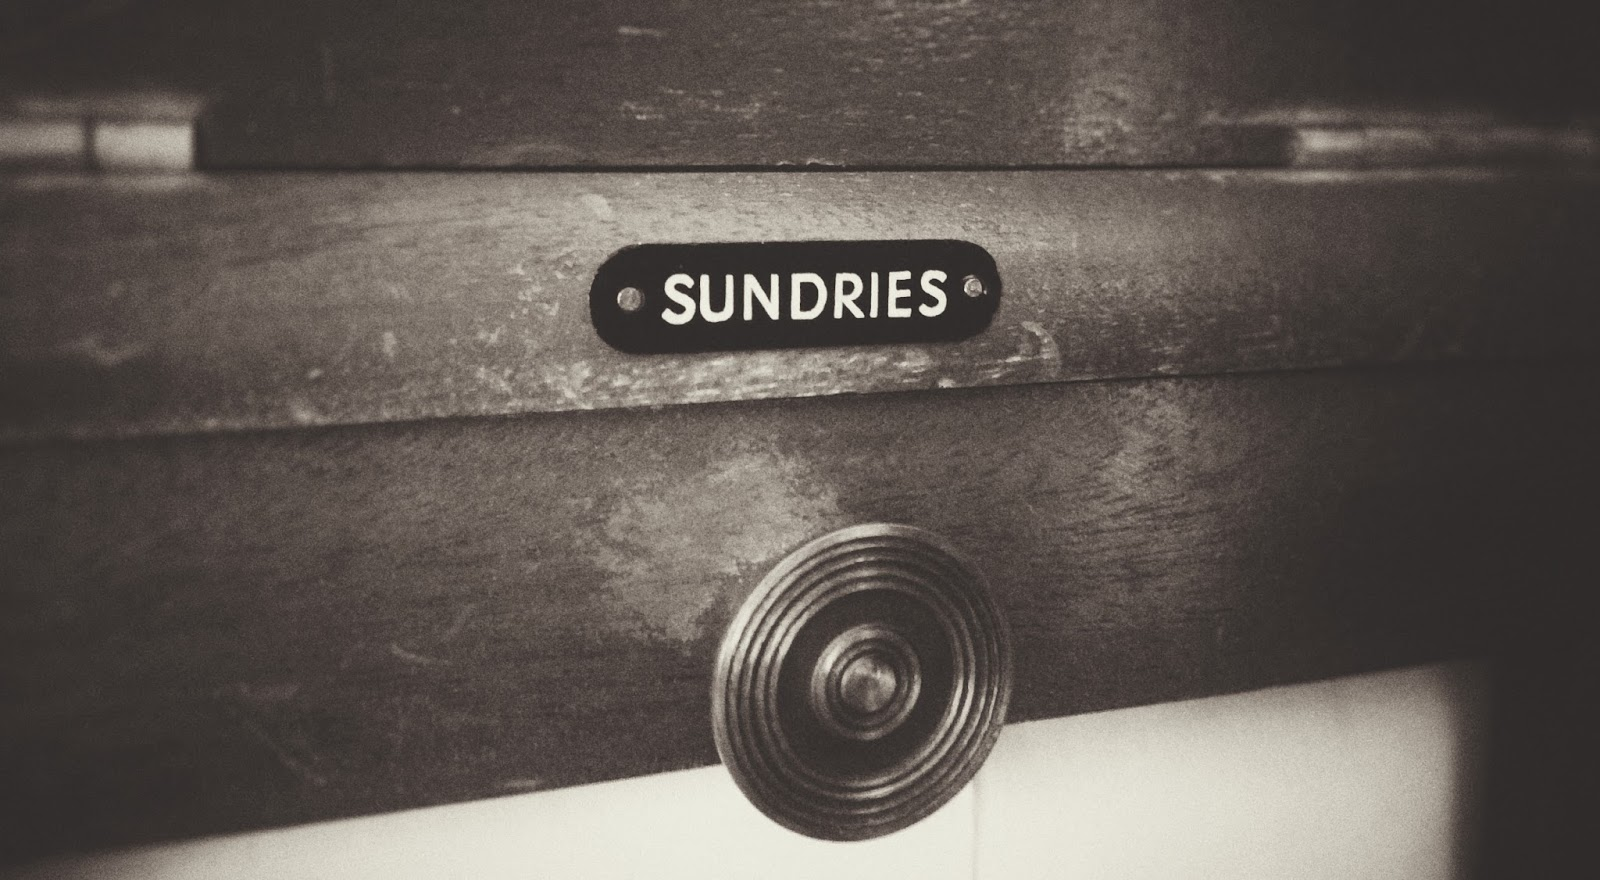 Sundries from the Gentleman's Wardrobe